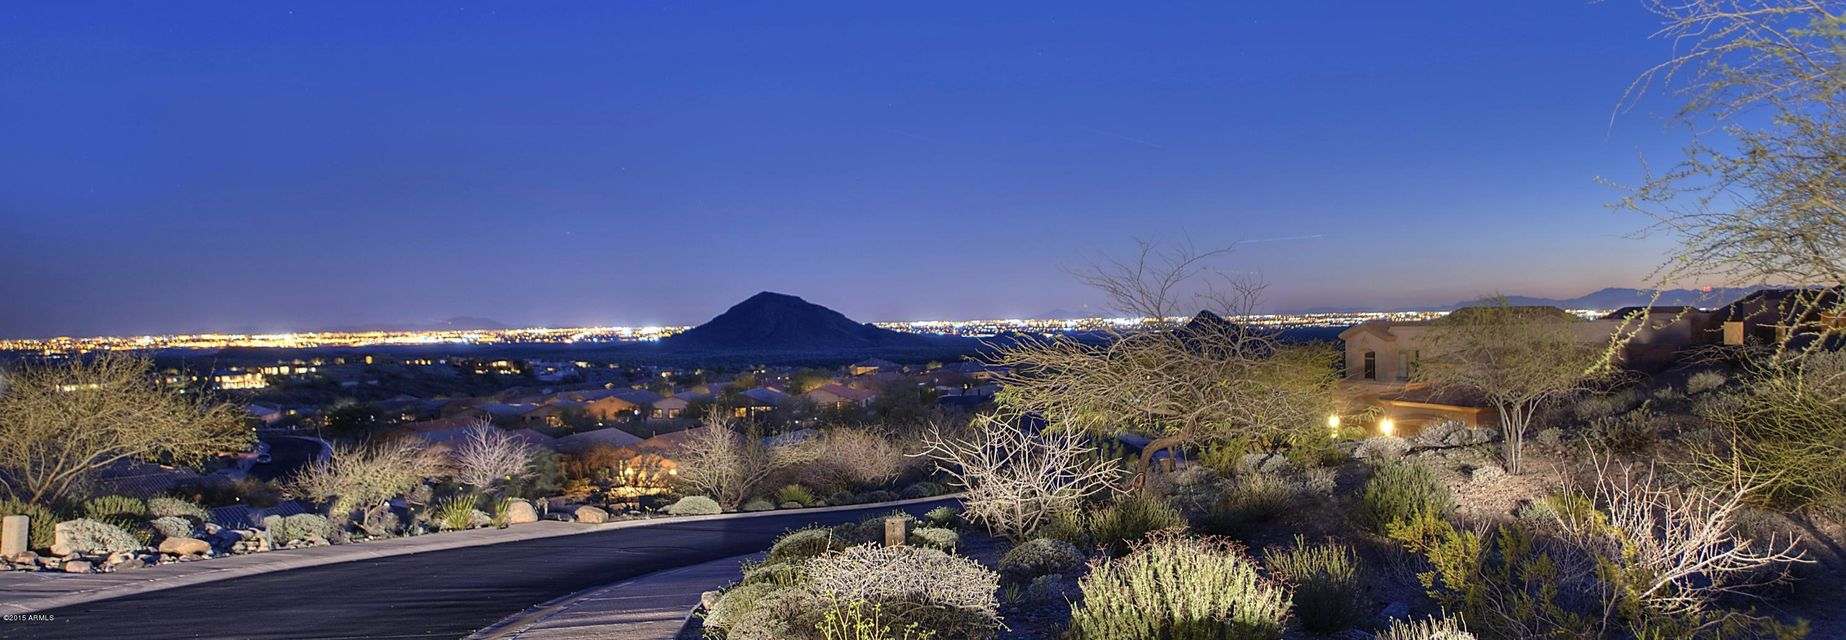 MLS 5576248 9027 N BROKEN BOW --, Fountain Hills, AZ 85268 Fountain Hills AZ Eagle Mountain